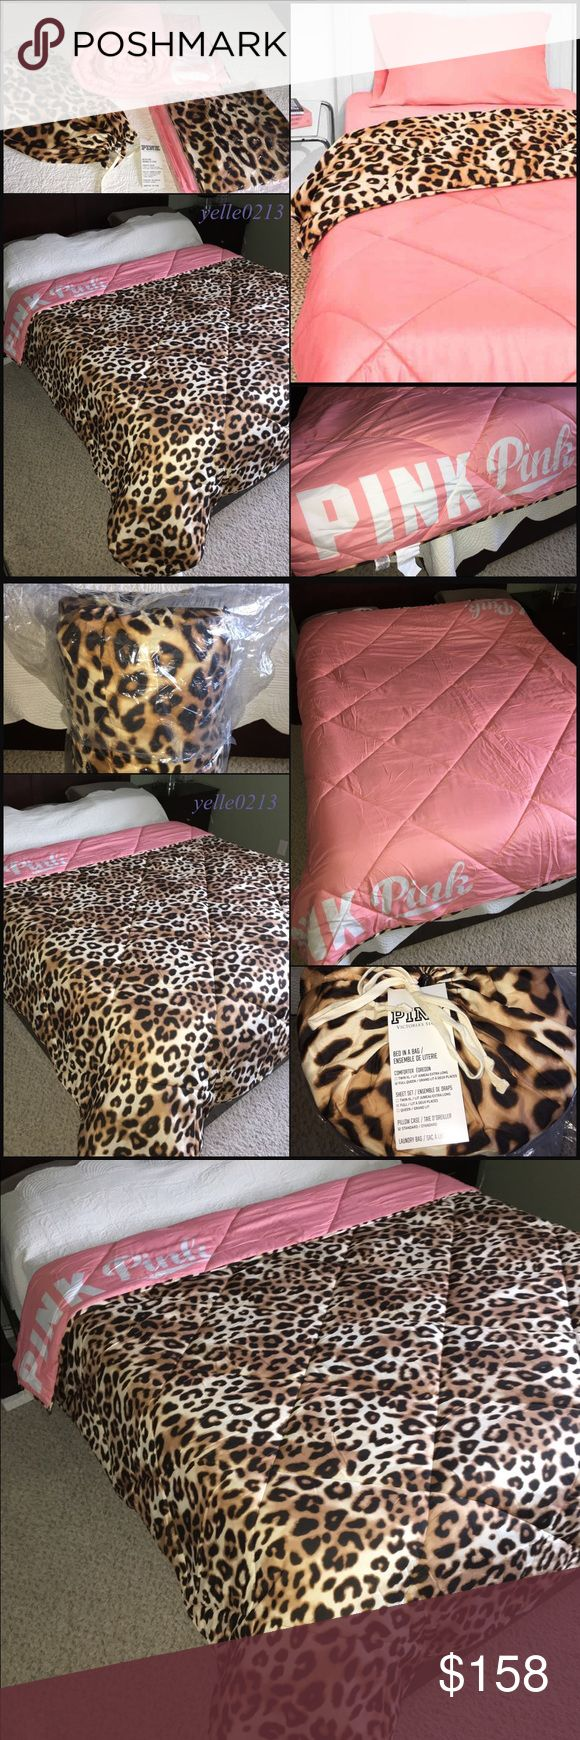 Vs pink bed sets - Salenew Vs Pink Bed In A Bag F Q Nwt Vs Pink Bed In A